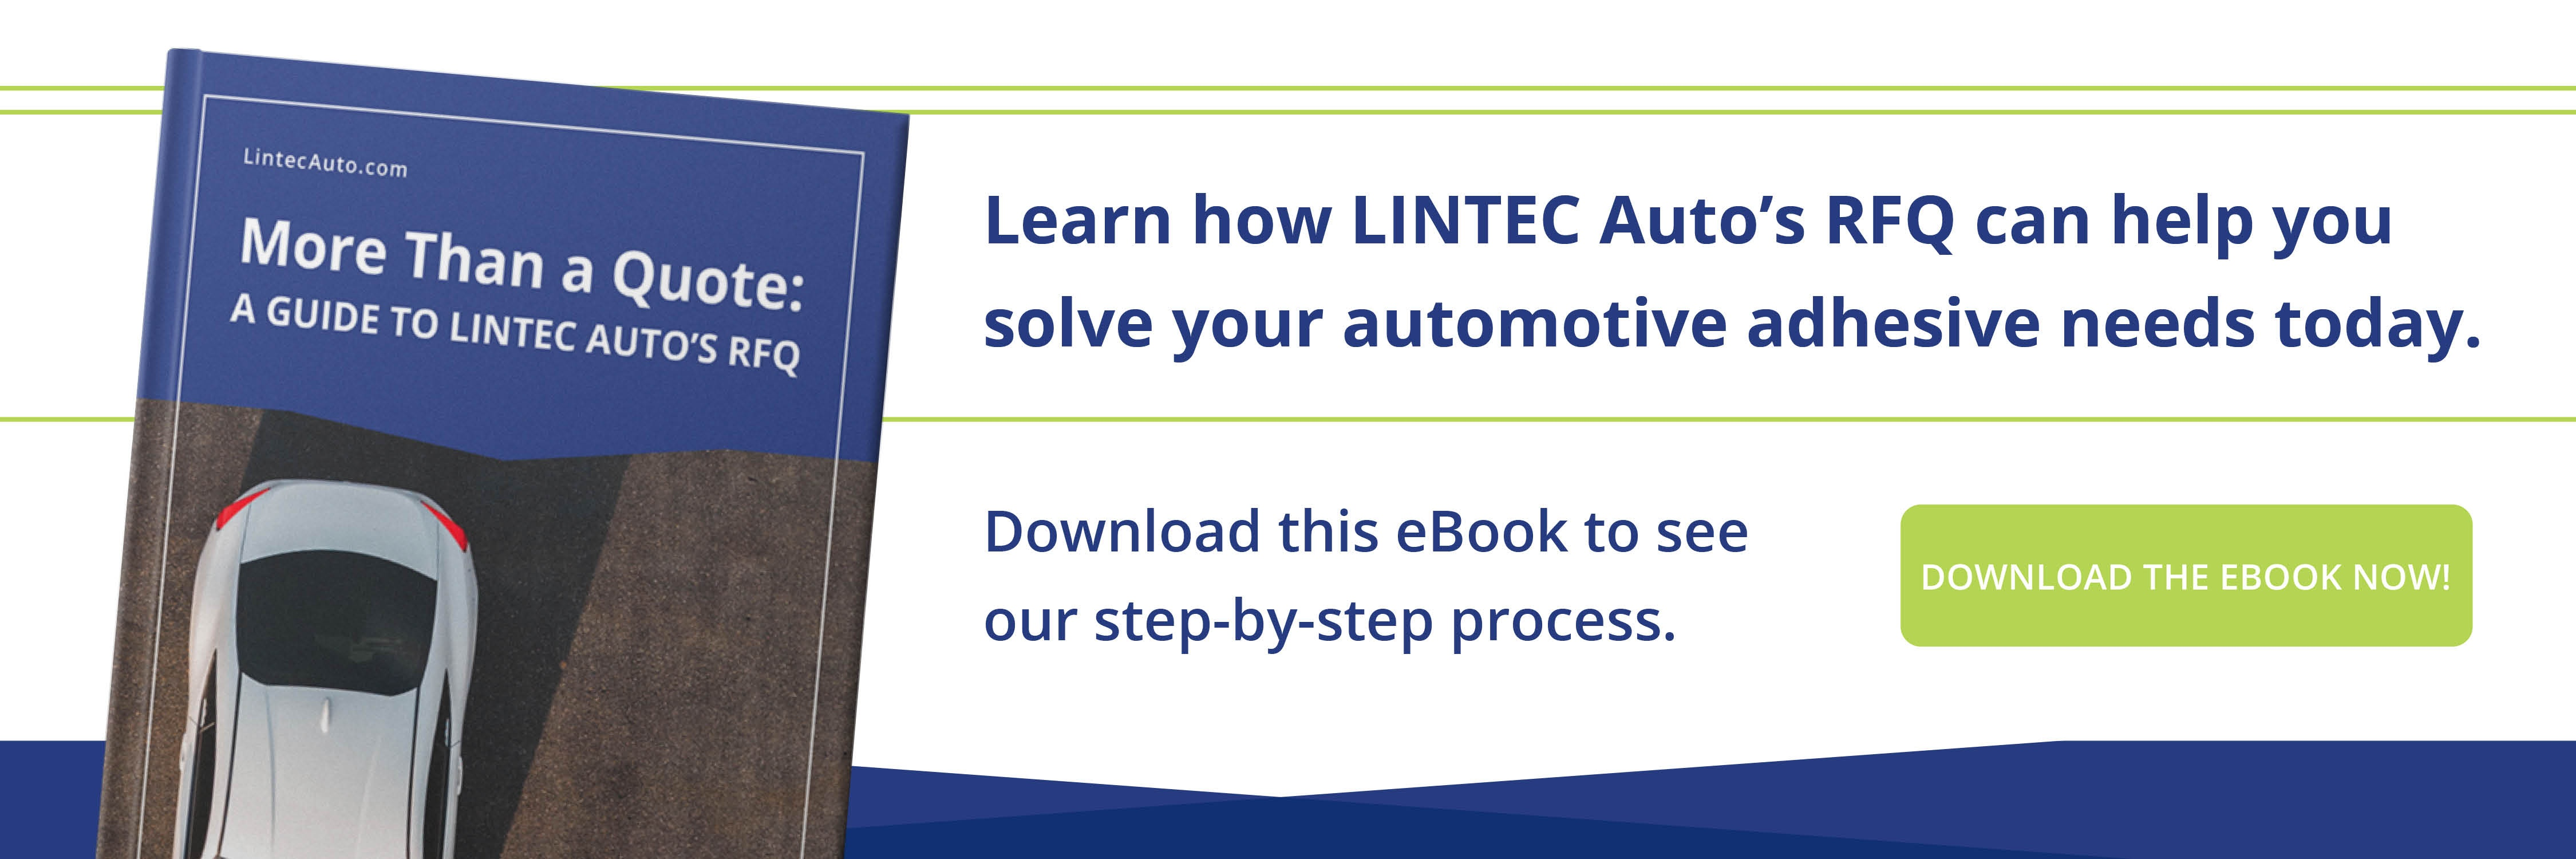 More Than a Quote: A Guide To Lintec Auto's RFQ